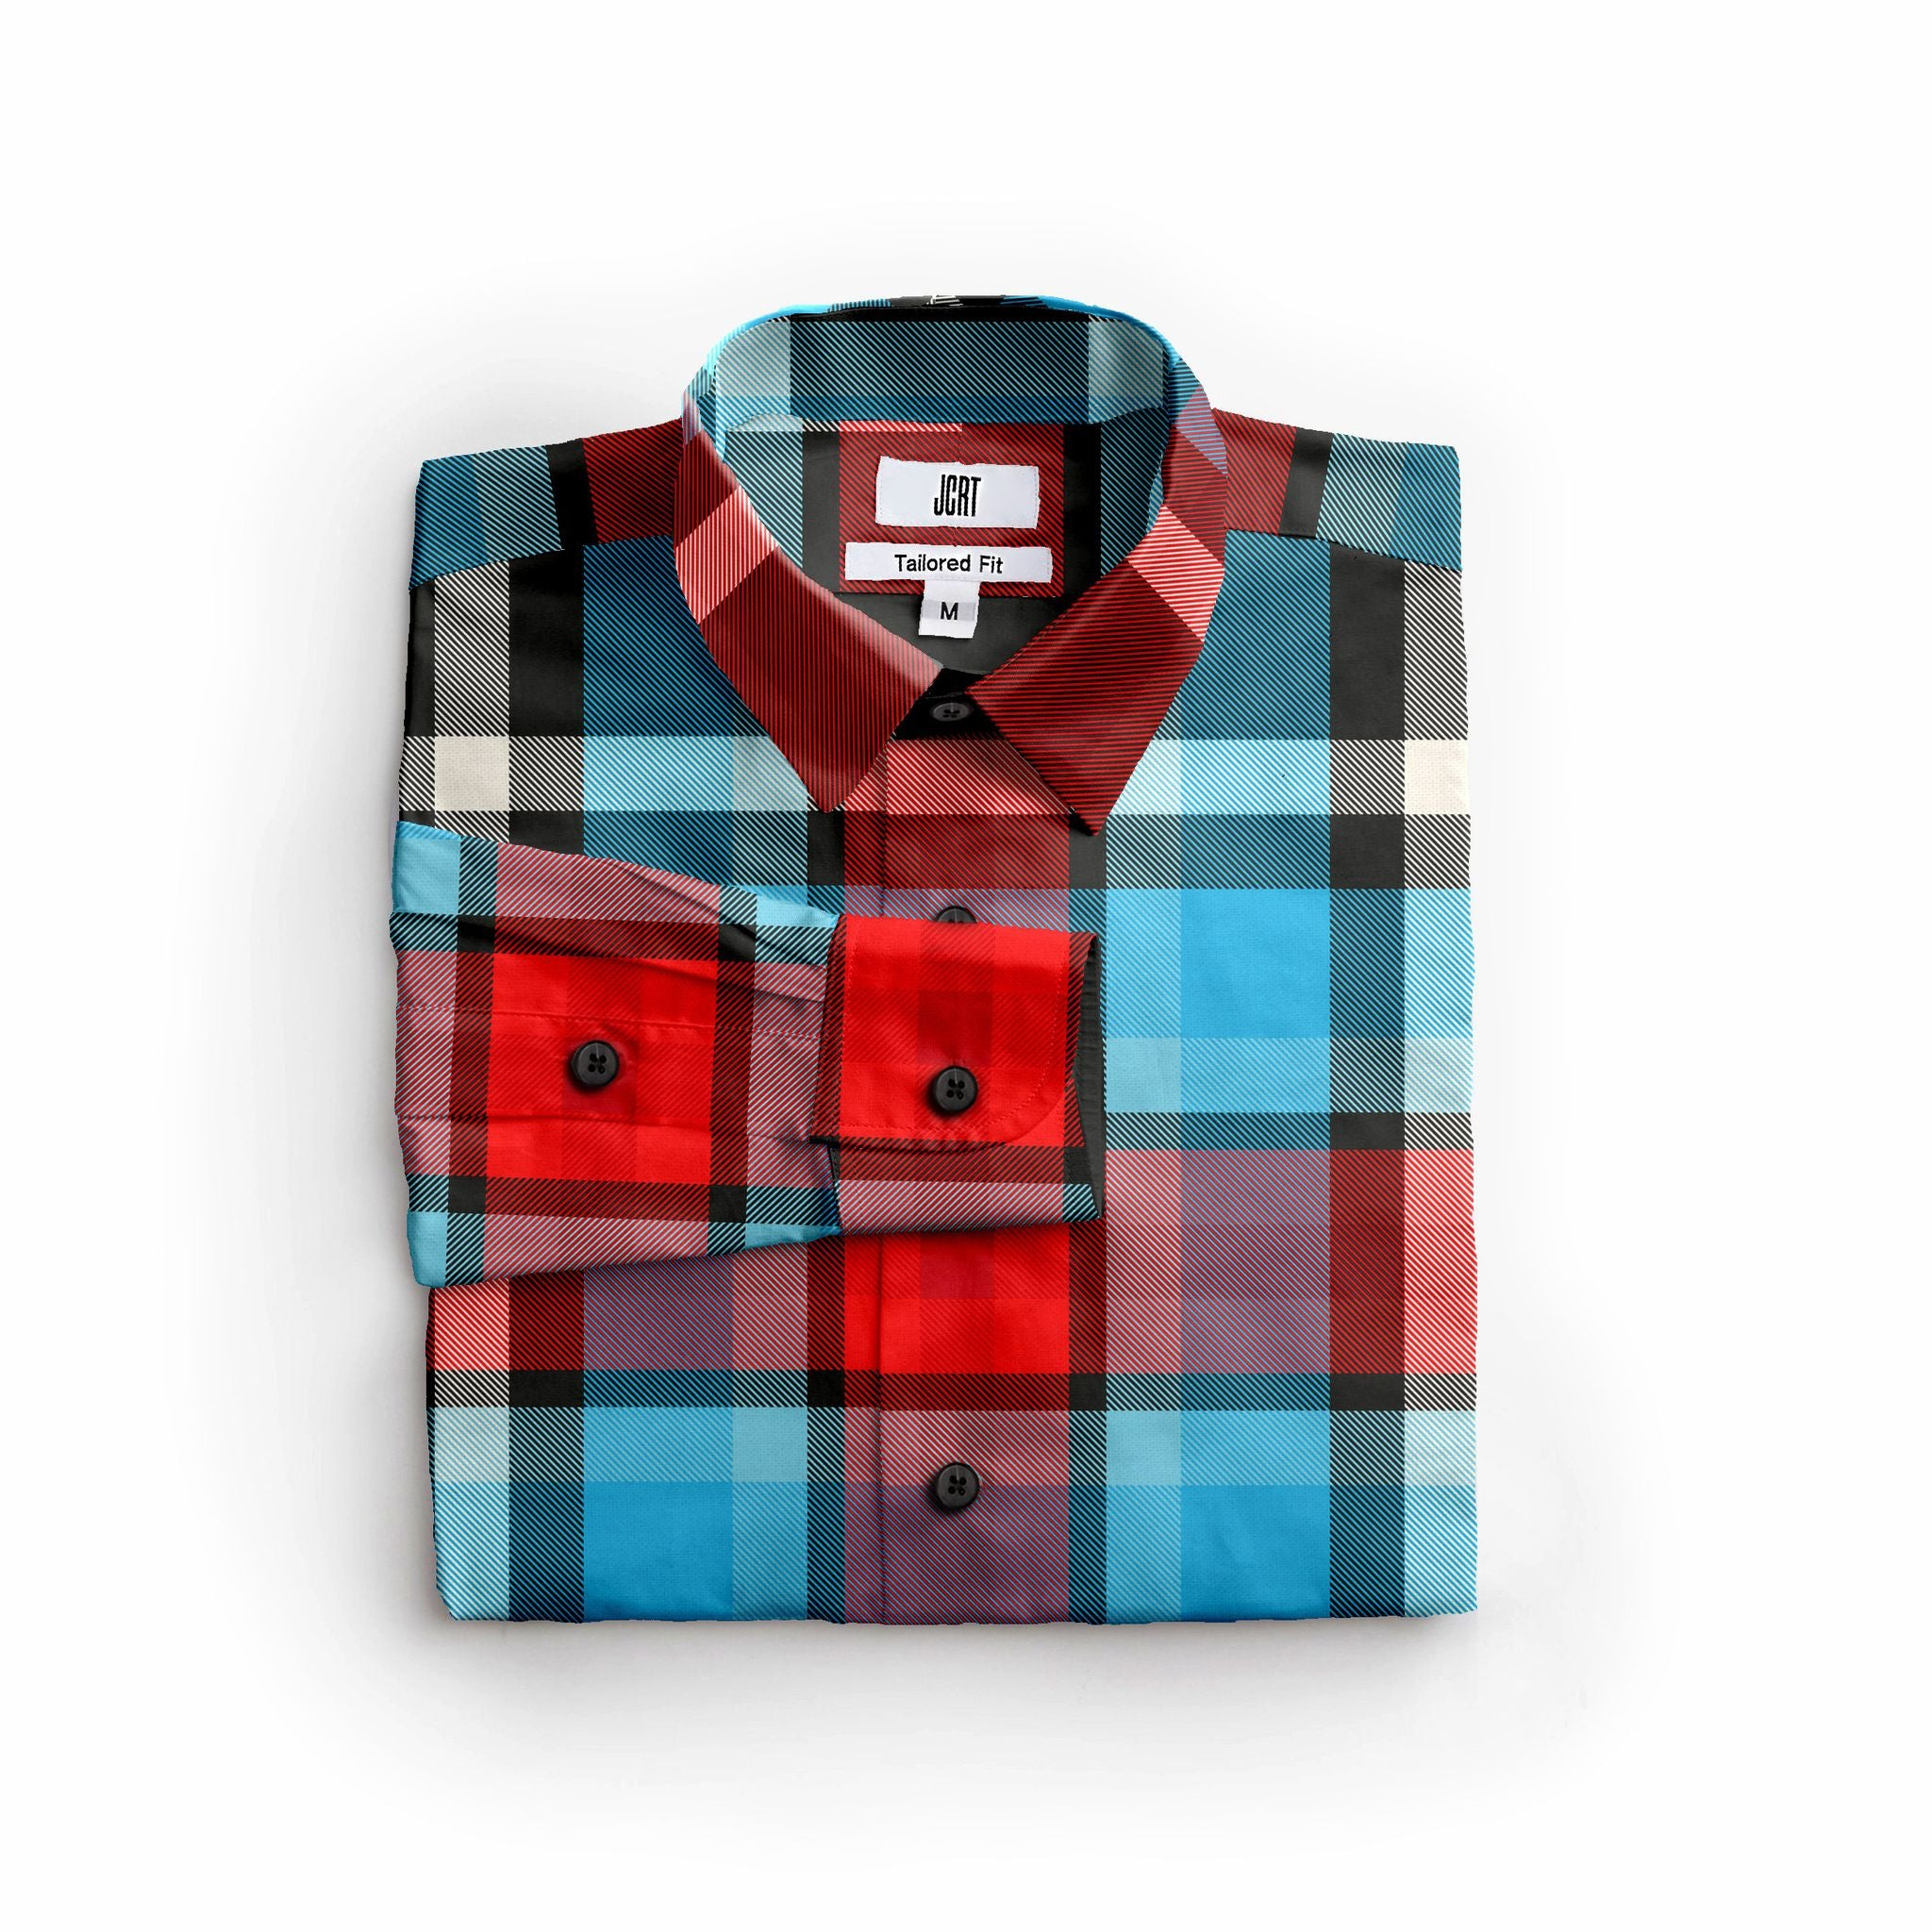 The Remain In Light Flannel